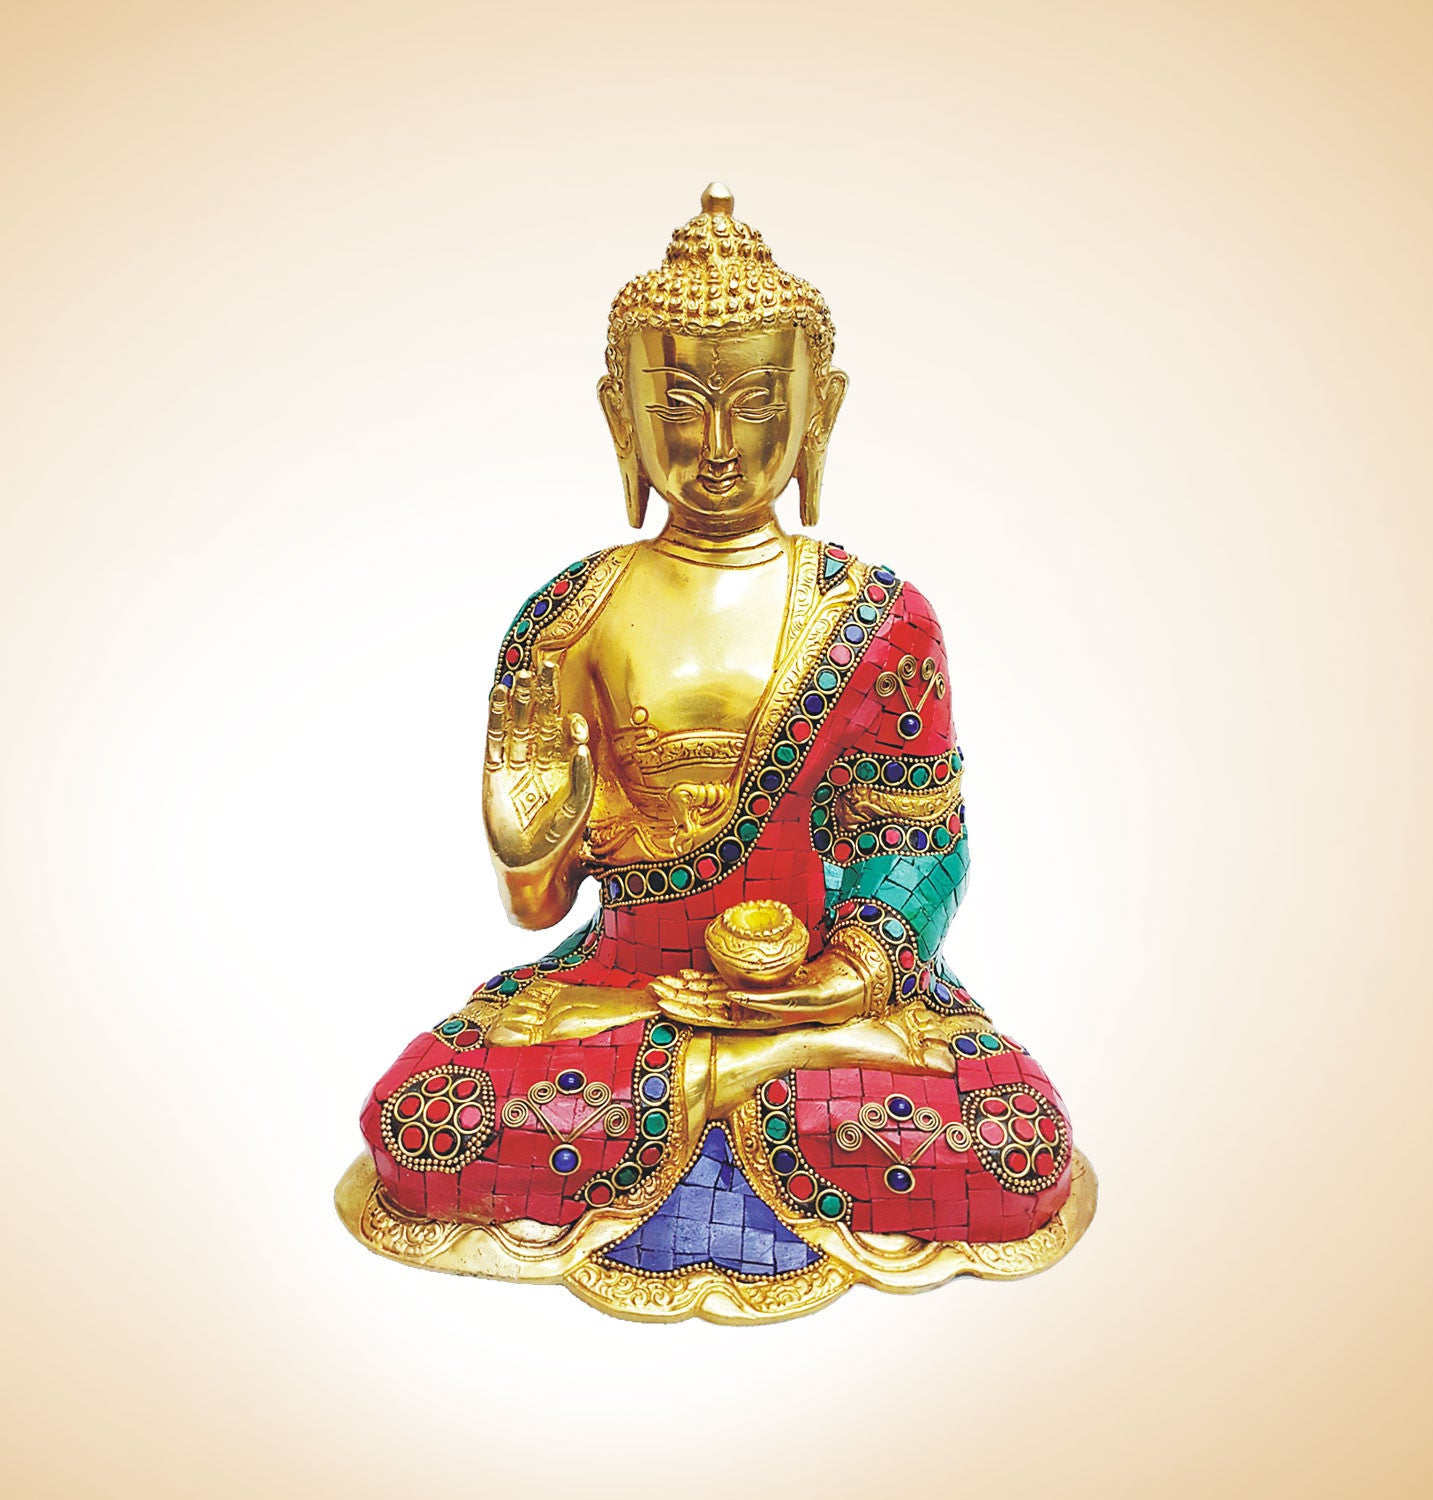 set p prod decor wholesale net buddha bulk accents cloudfront of home free my decorative statue spot gold ships statues src abc